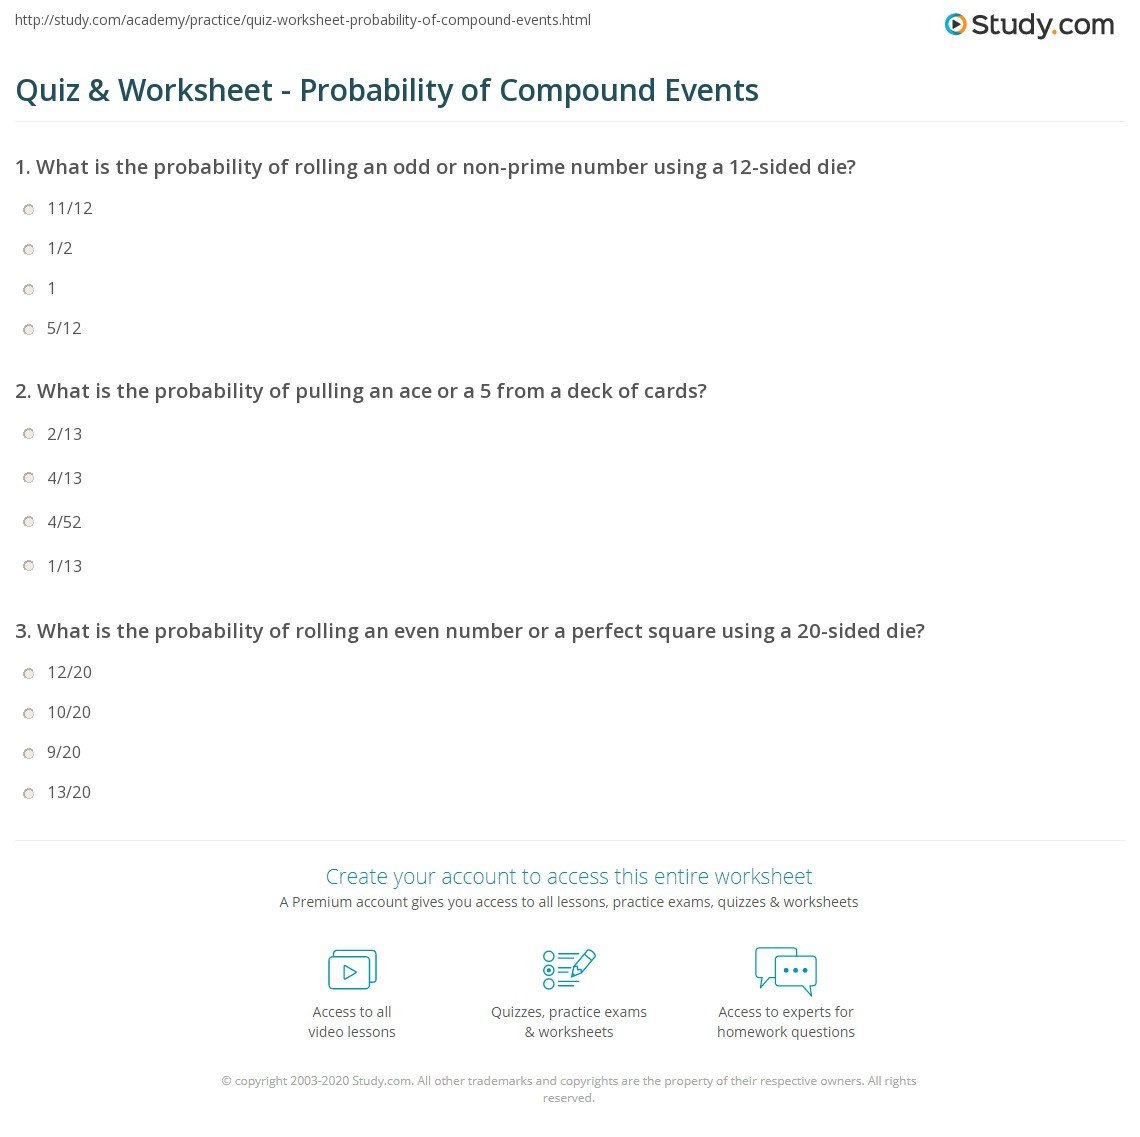 quiz worksheet probability of pound events study